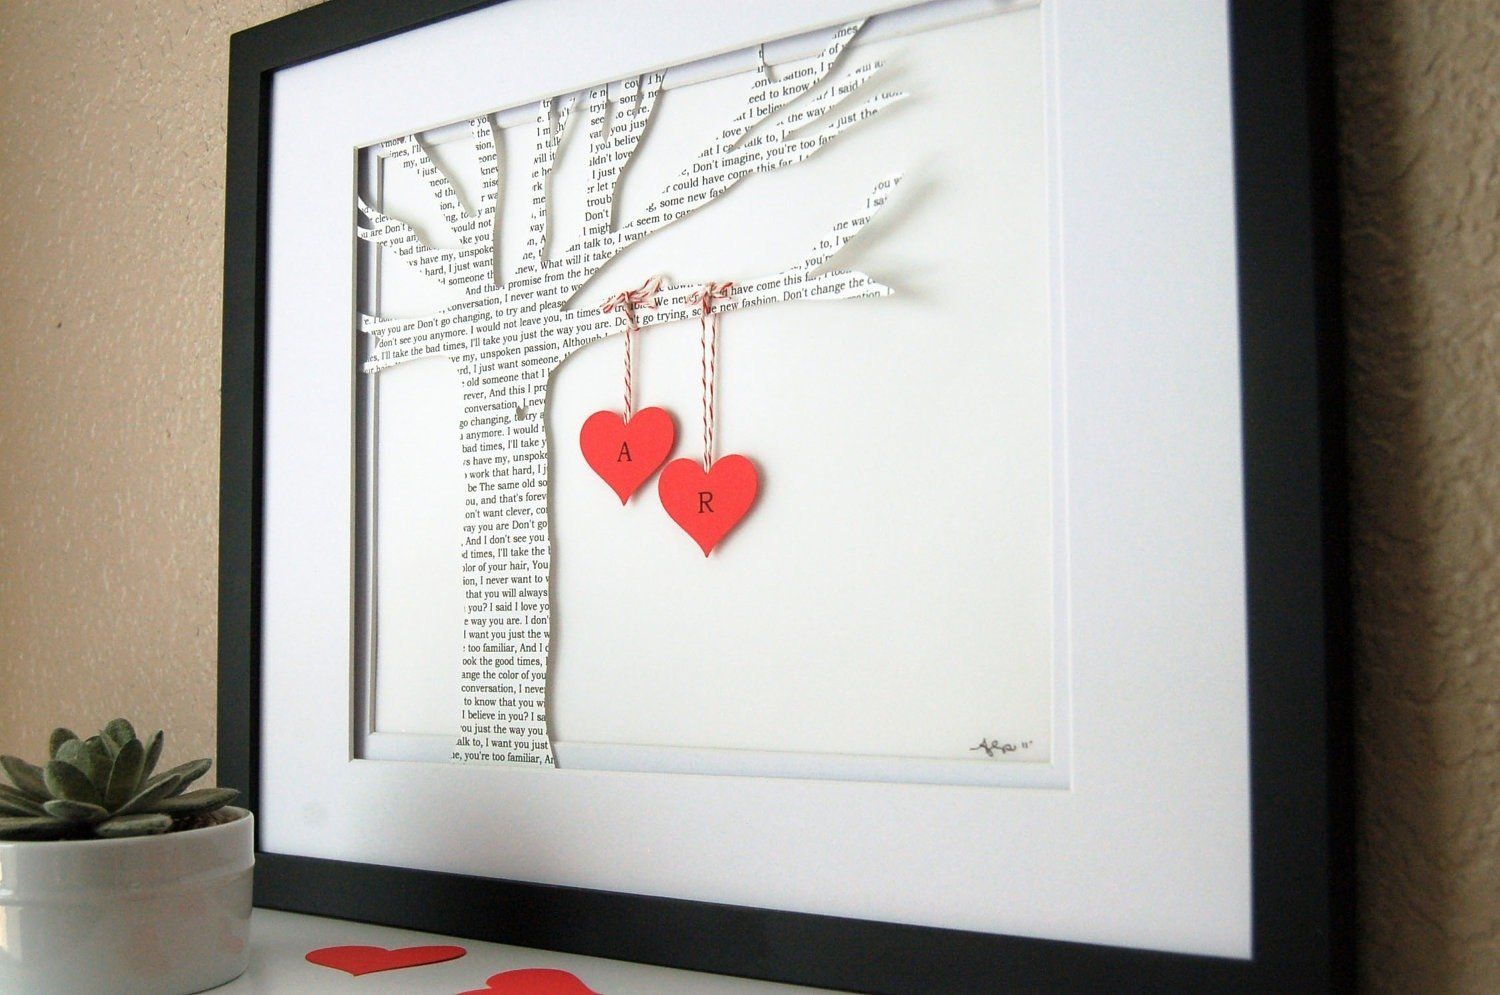 10 Lovely Wedding Gifts Ideas For Friends creative wedding gift ideas to make new wedding gift fresh wedding 2020